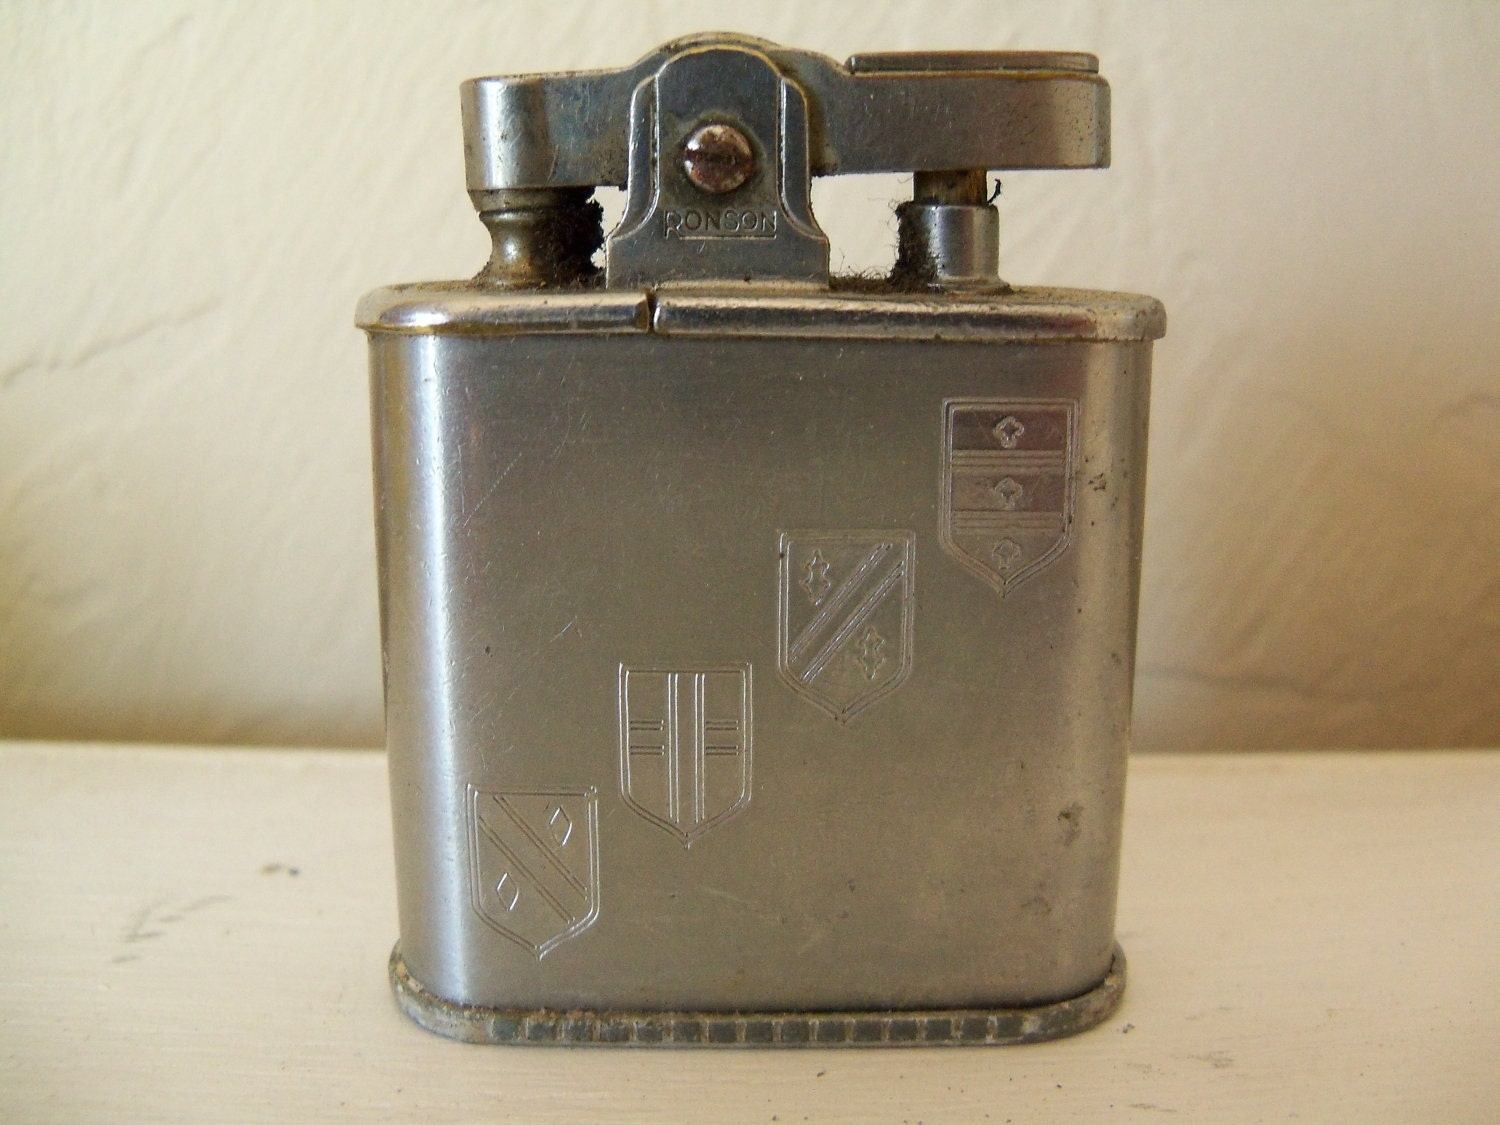 Vintage Lighter Ronson Lighter Whirlwind By